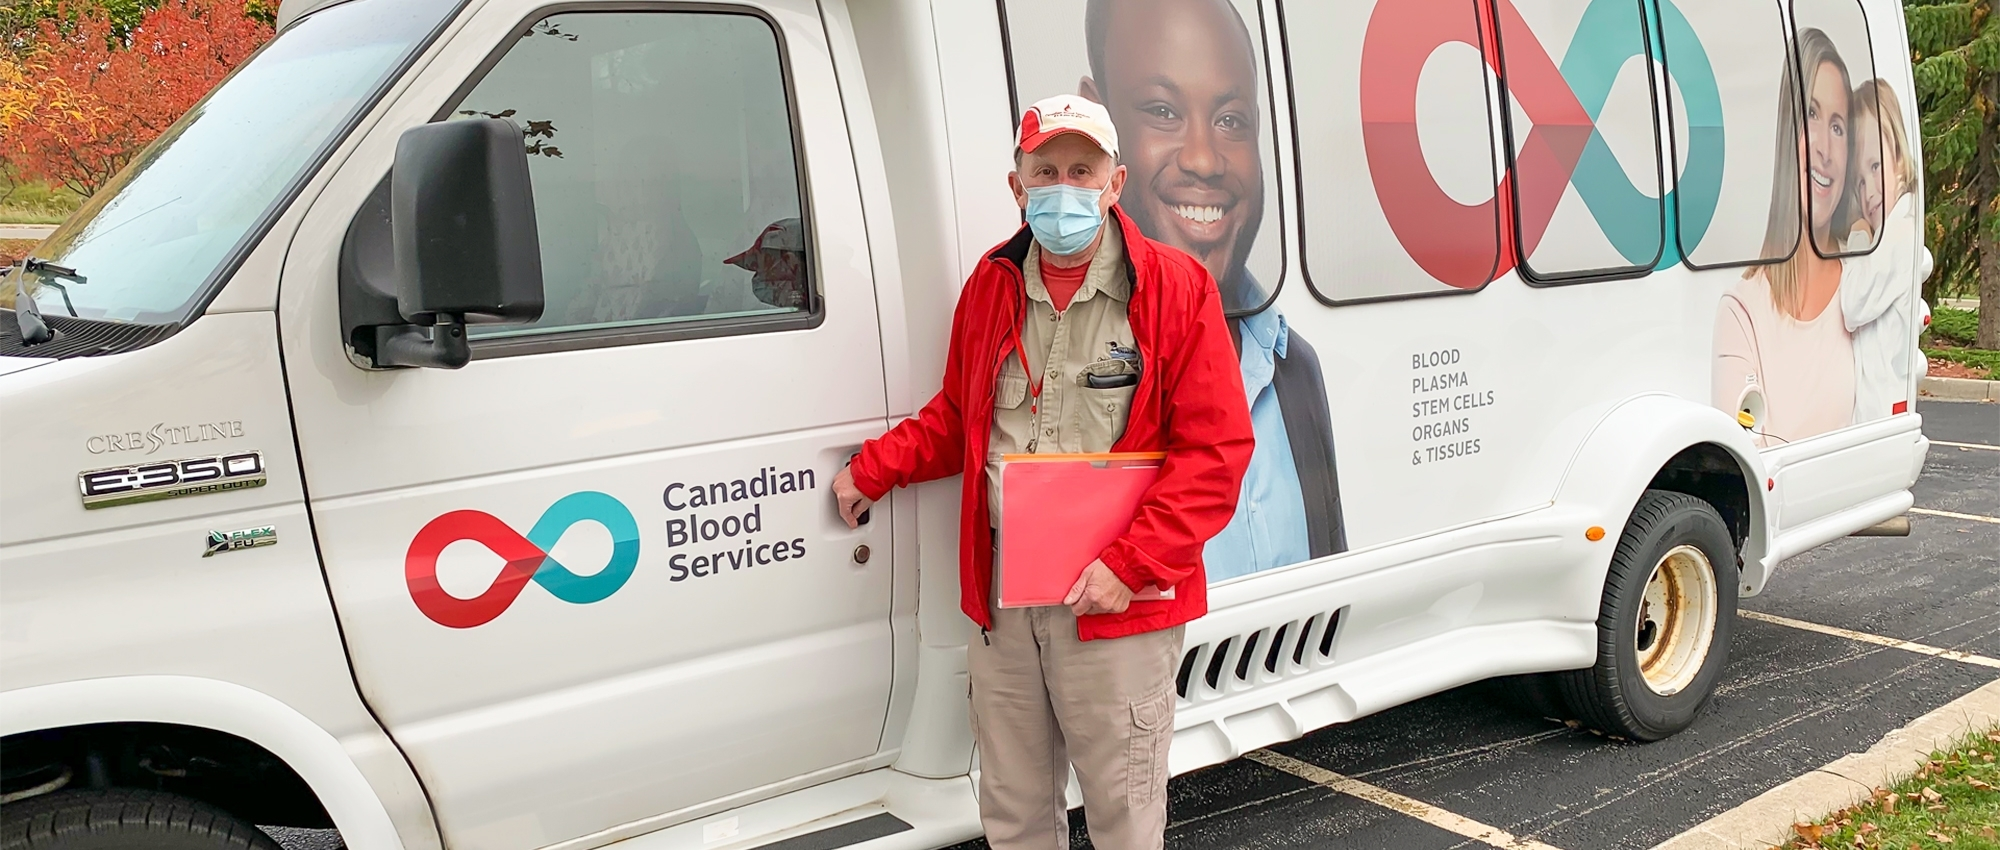 Image of Volunteer bus driver David Neu wearing a mask and holding a clipboard stands at the driver-side door of a short white bus with the Canadian Blood Services logo.